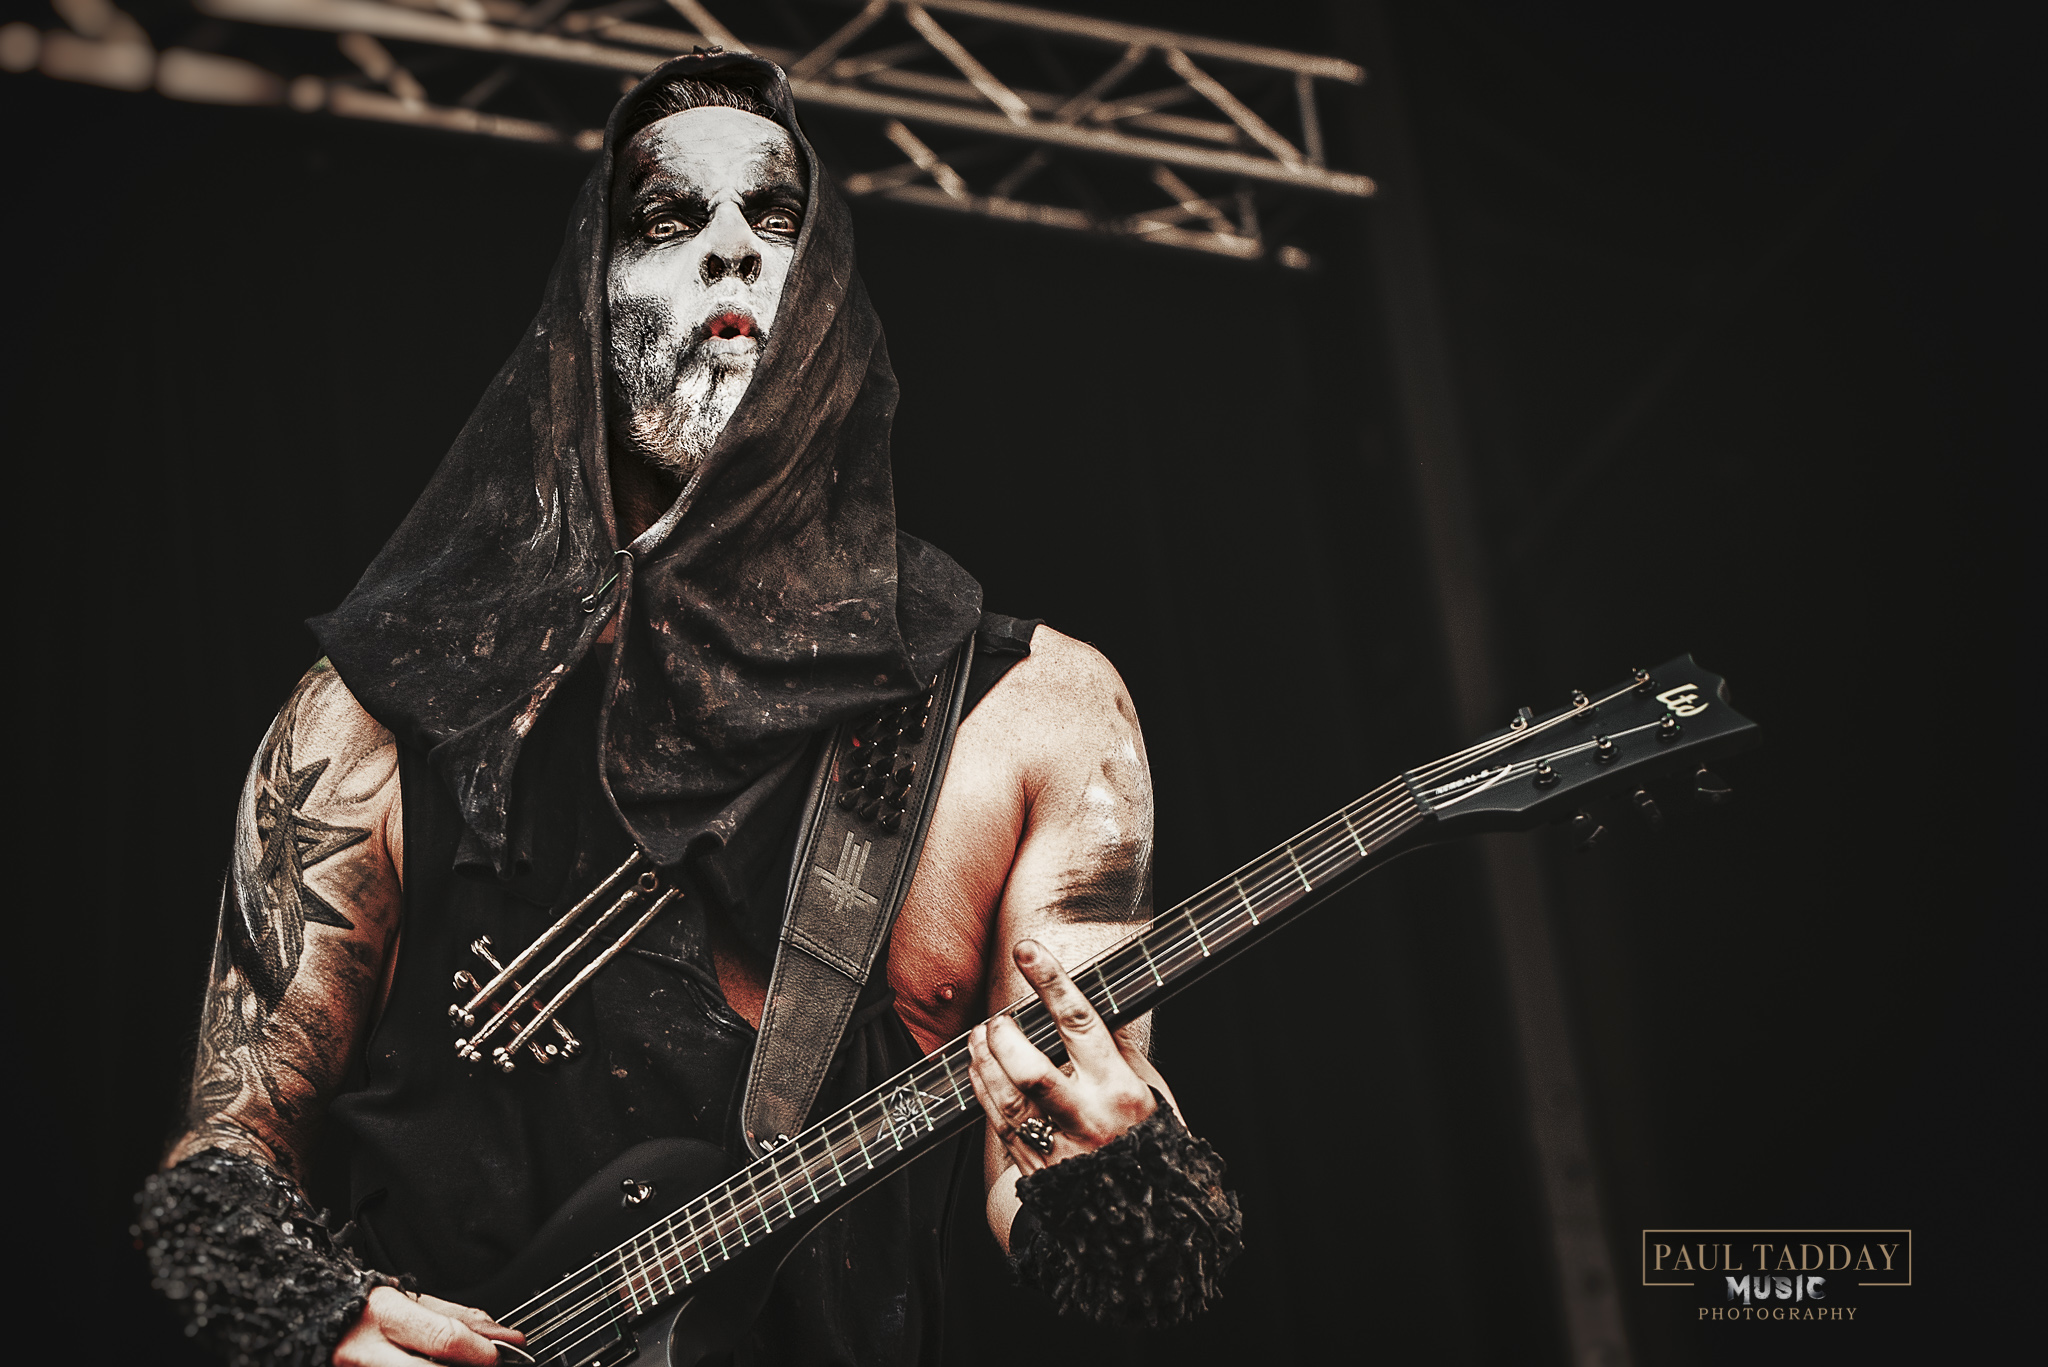 behemoth - download melbourne - march 2019 - web - paul tadday photography - 7.jpg